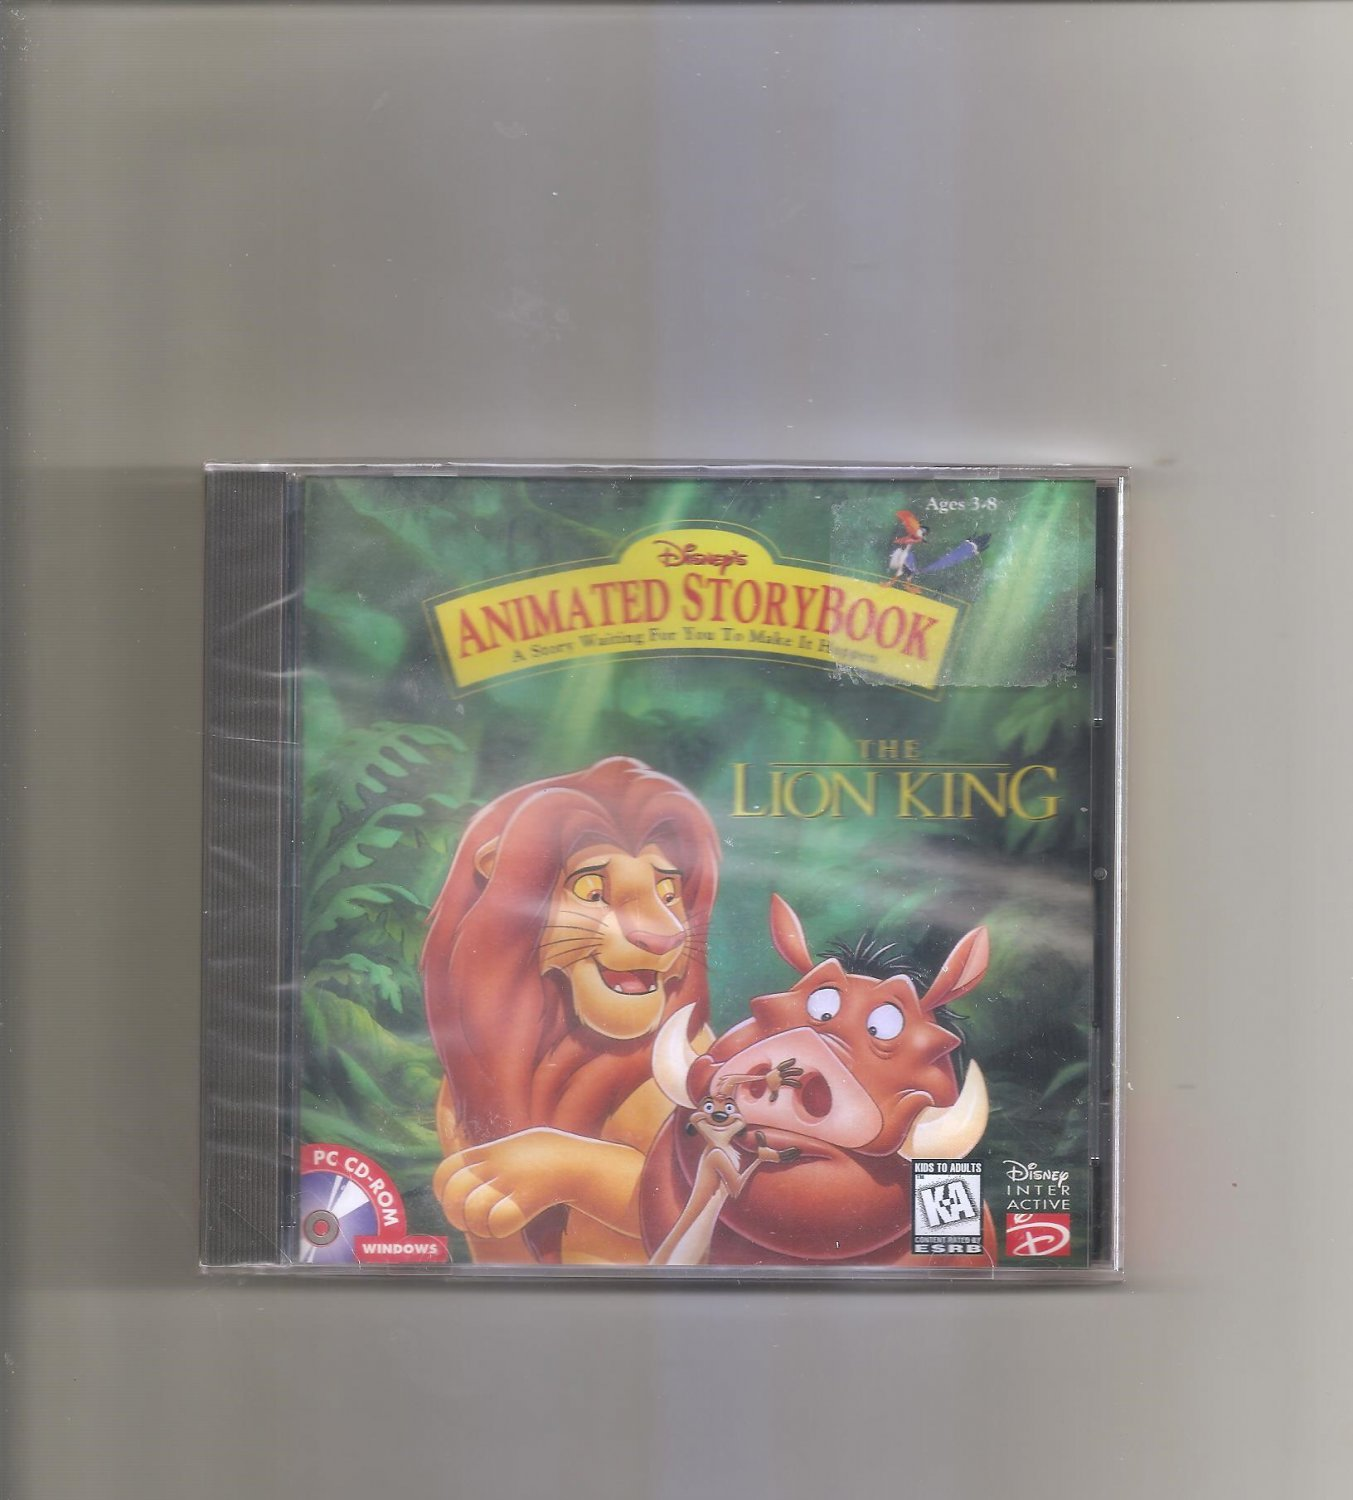 Disney Lion King Animated Storybook (Jewel Case) CD-ROM